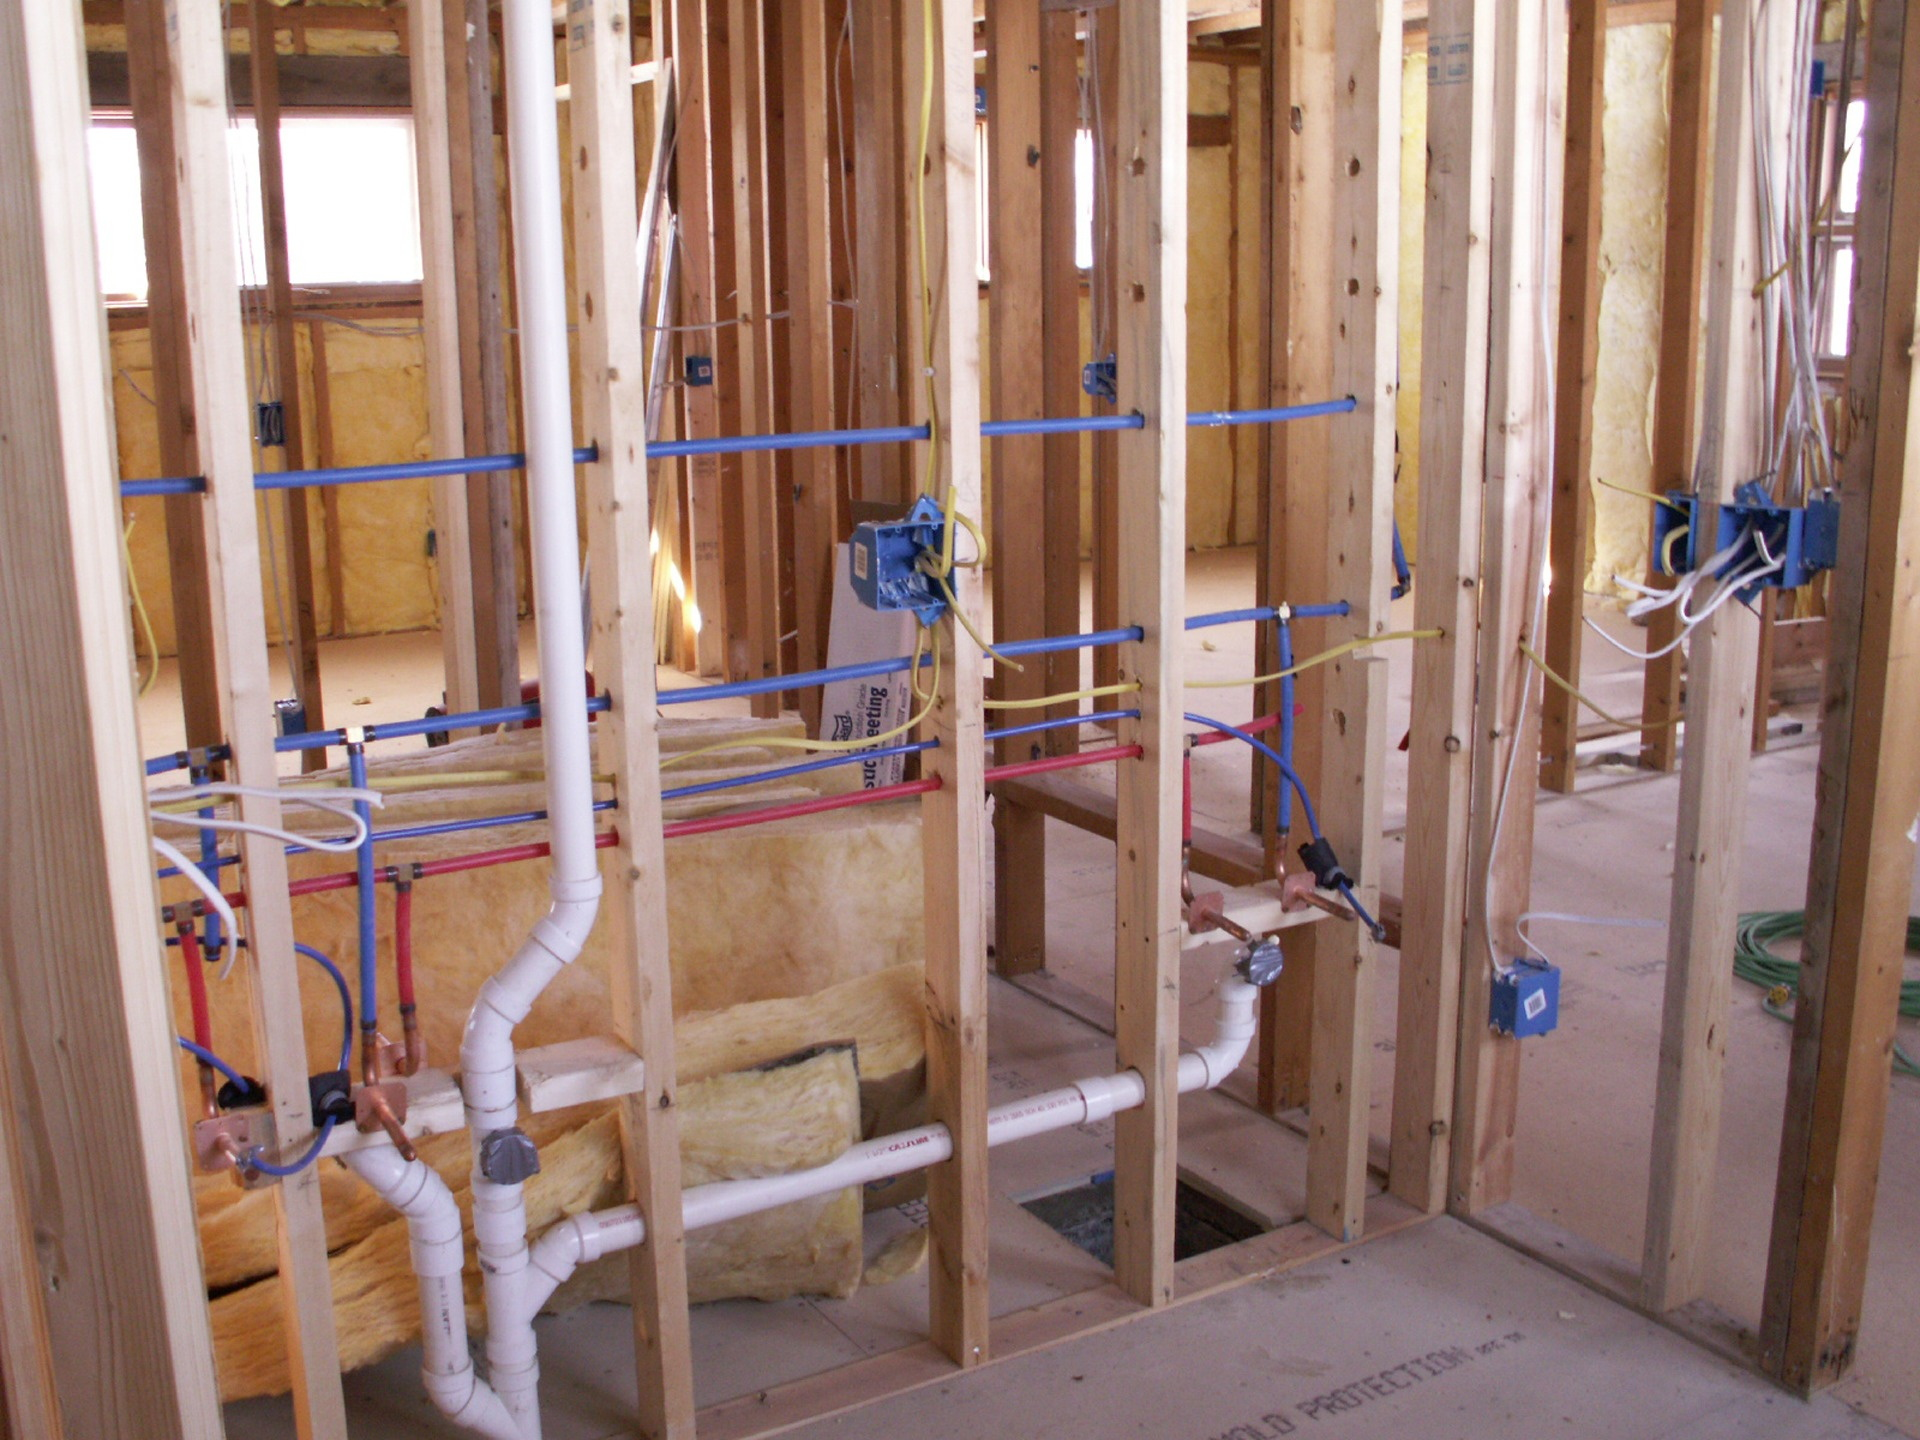 signs of bad electrical wiring hb energy solutions Old Electrical Wiring